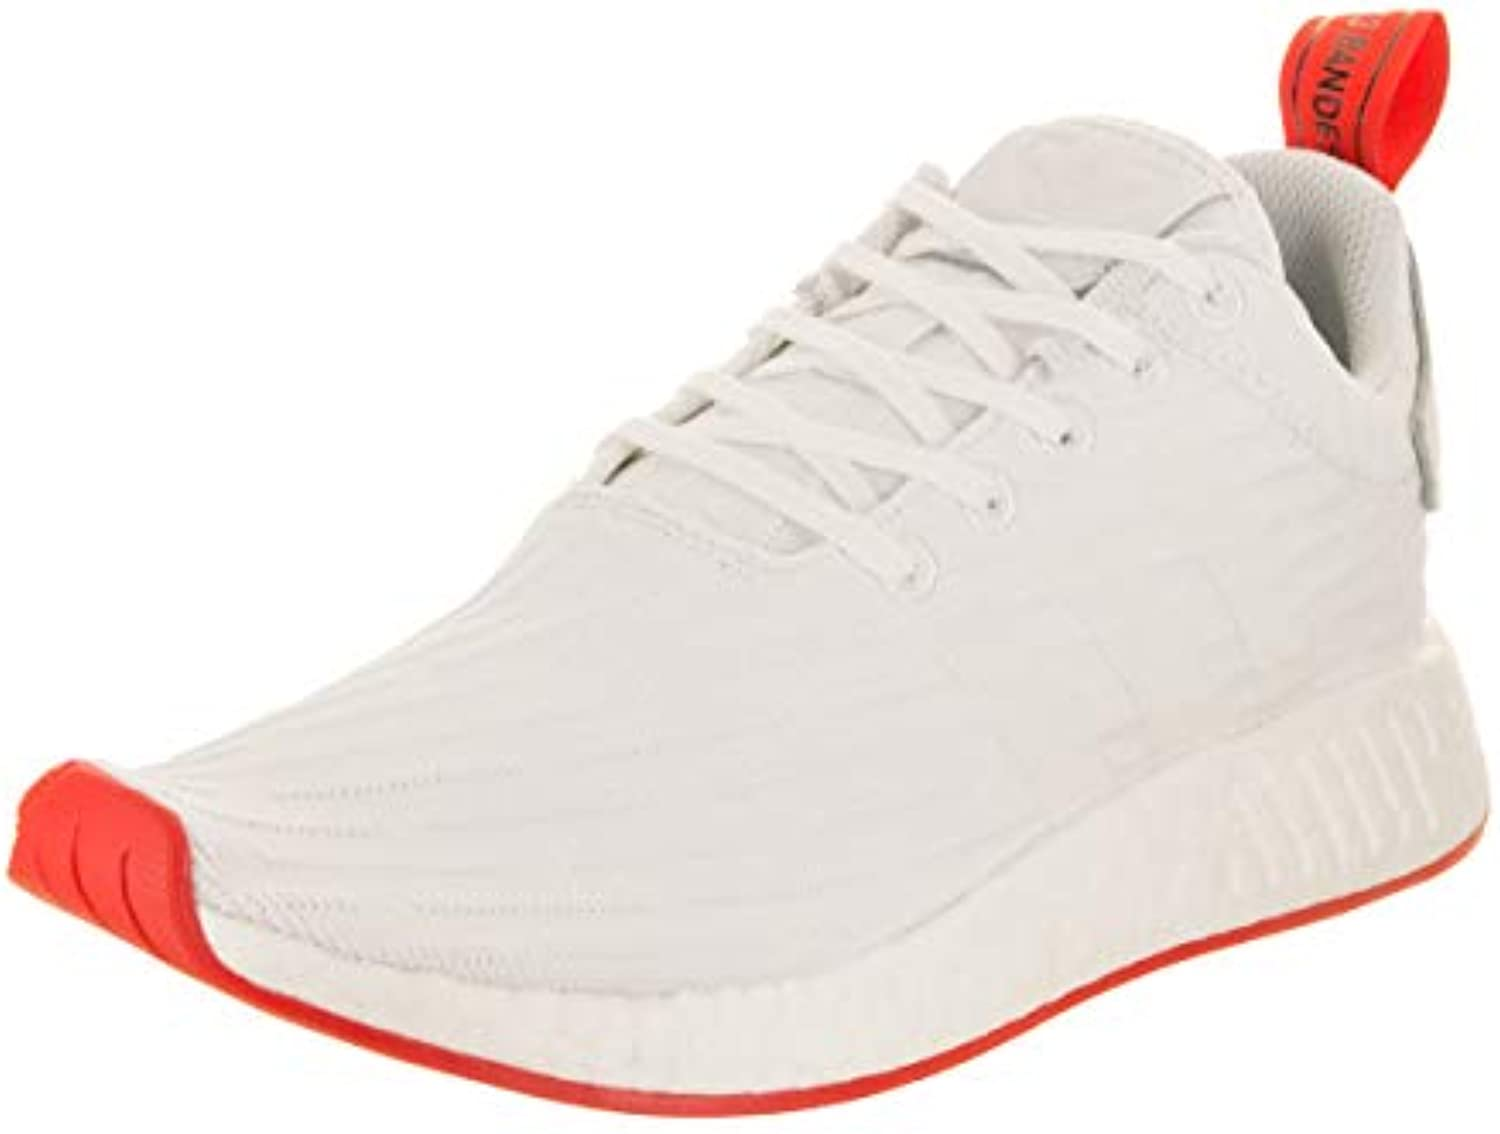 Men's/Women's adidas NMD R2 PK PK PK - BA7253 use Quality First renewed on time af0a00